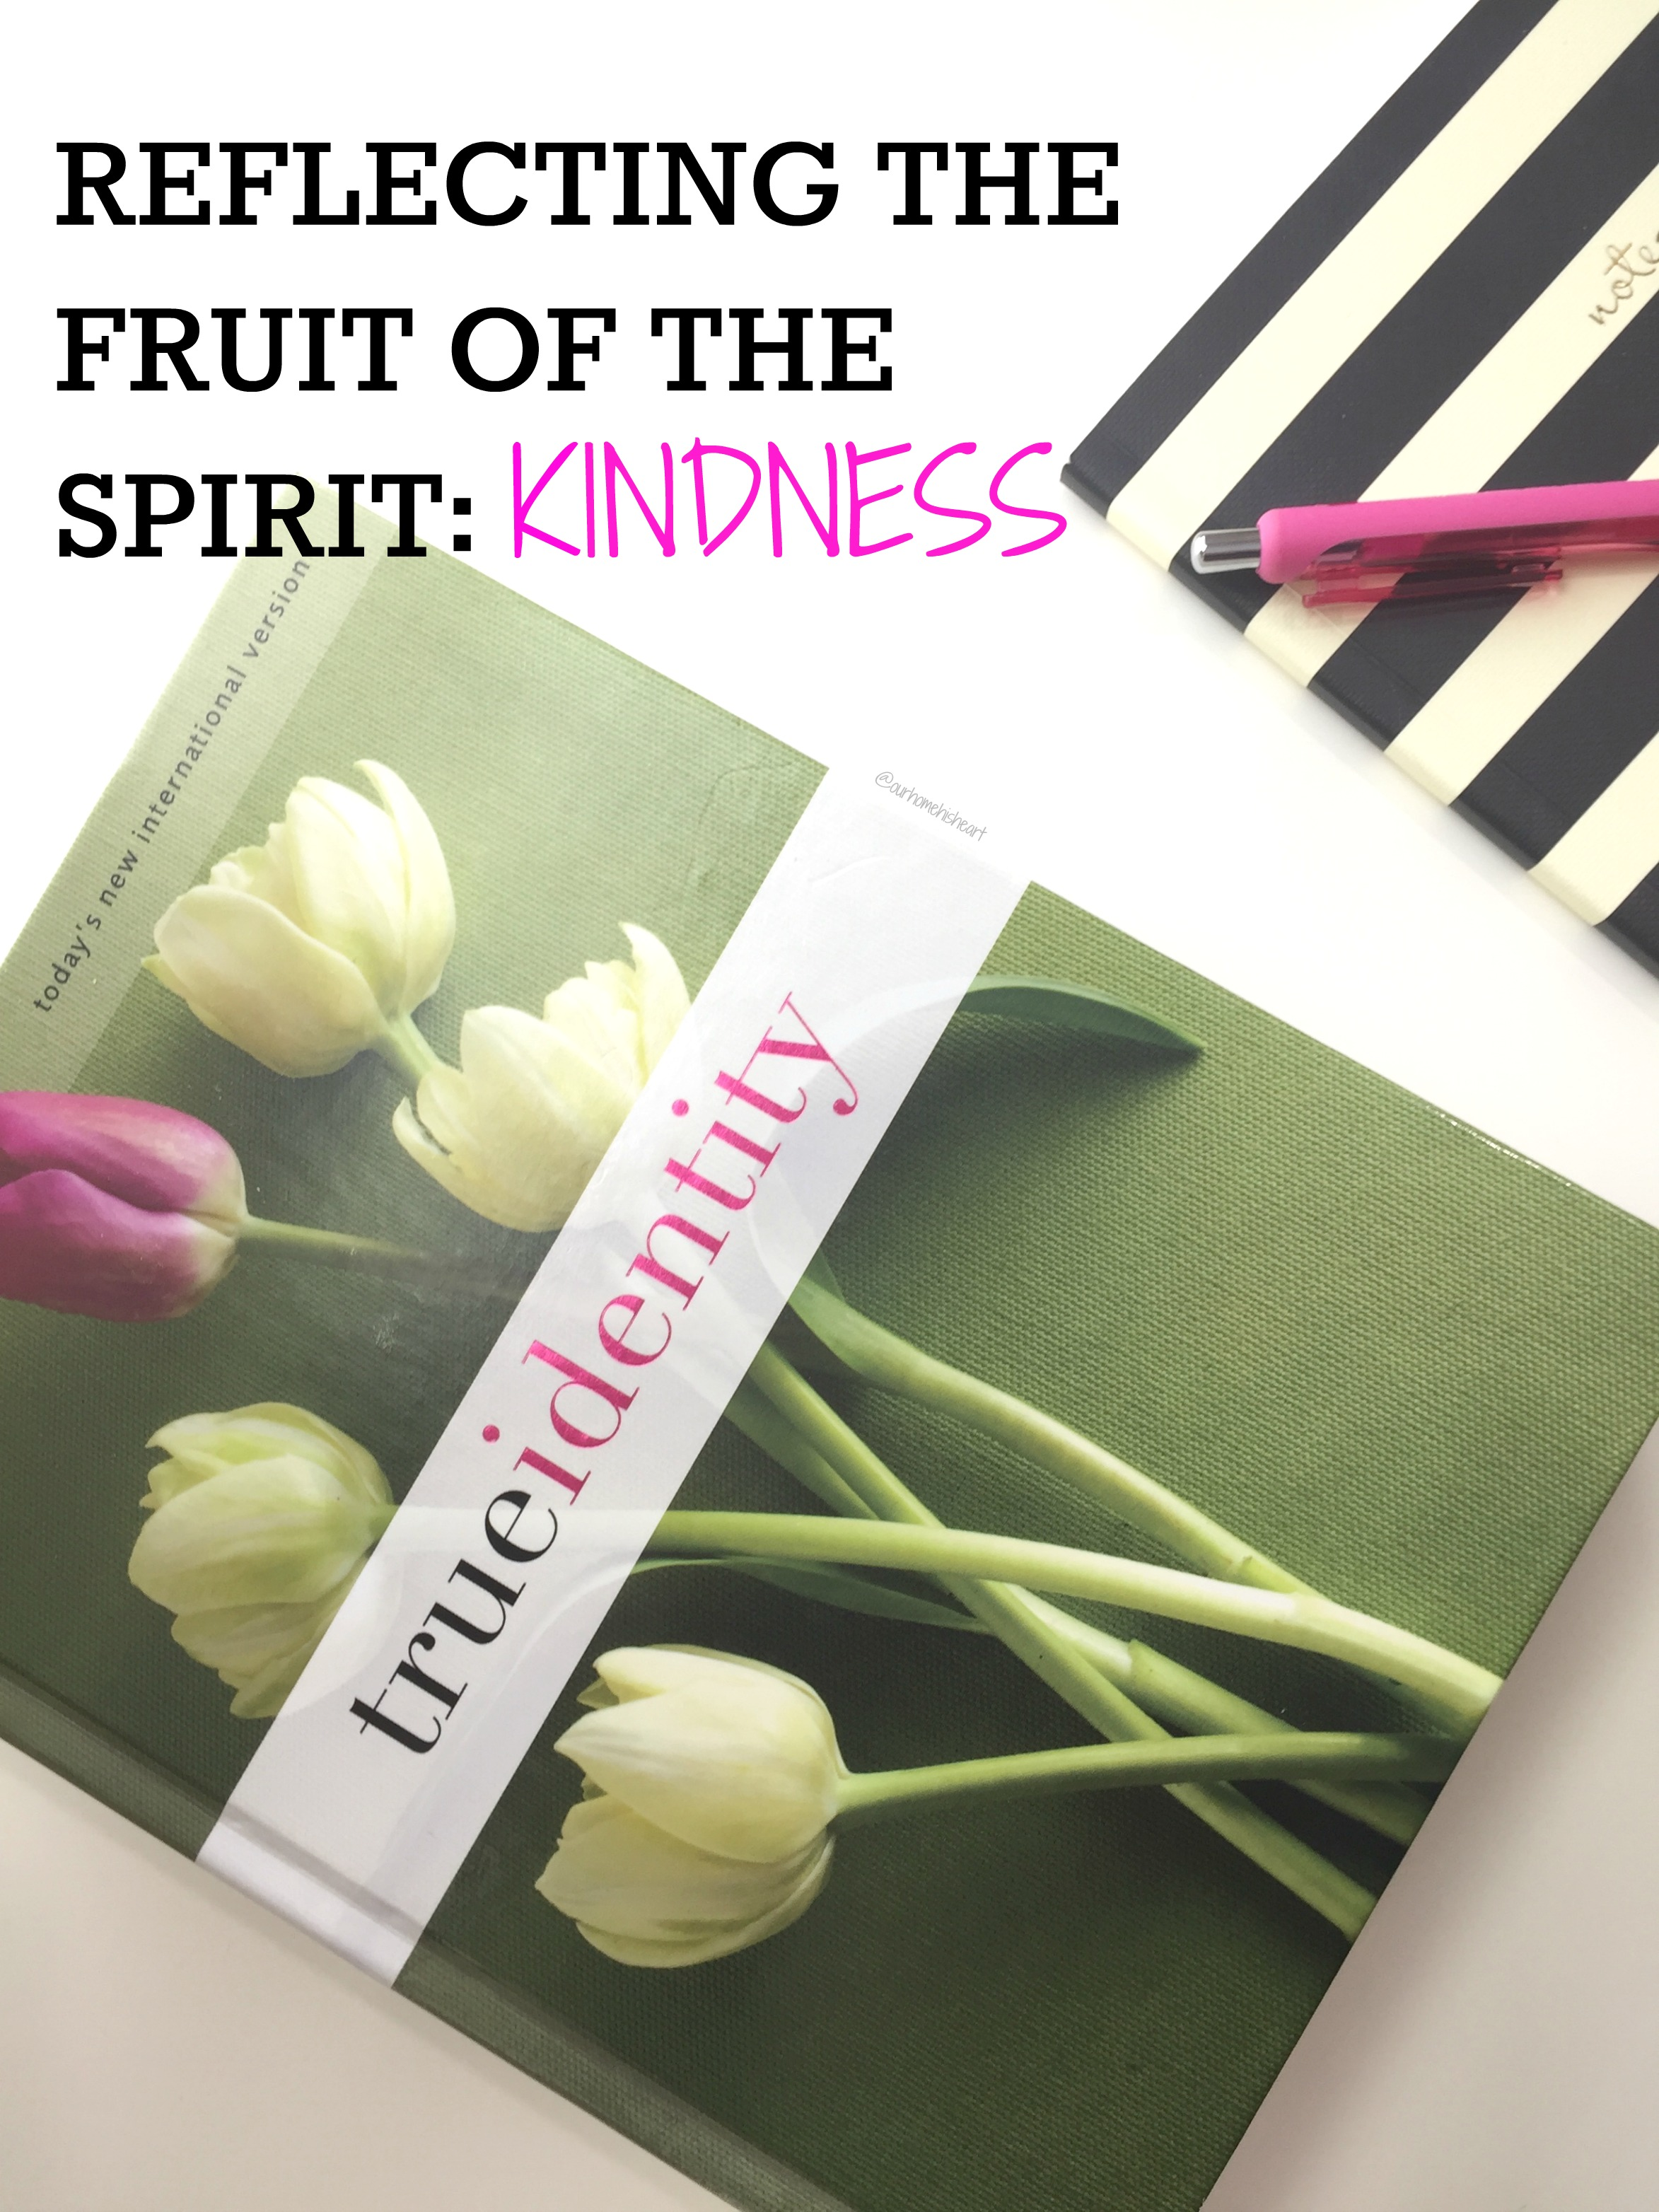 fruit of the spirit Kindness